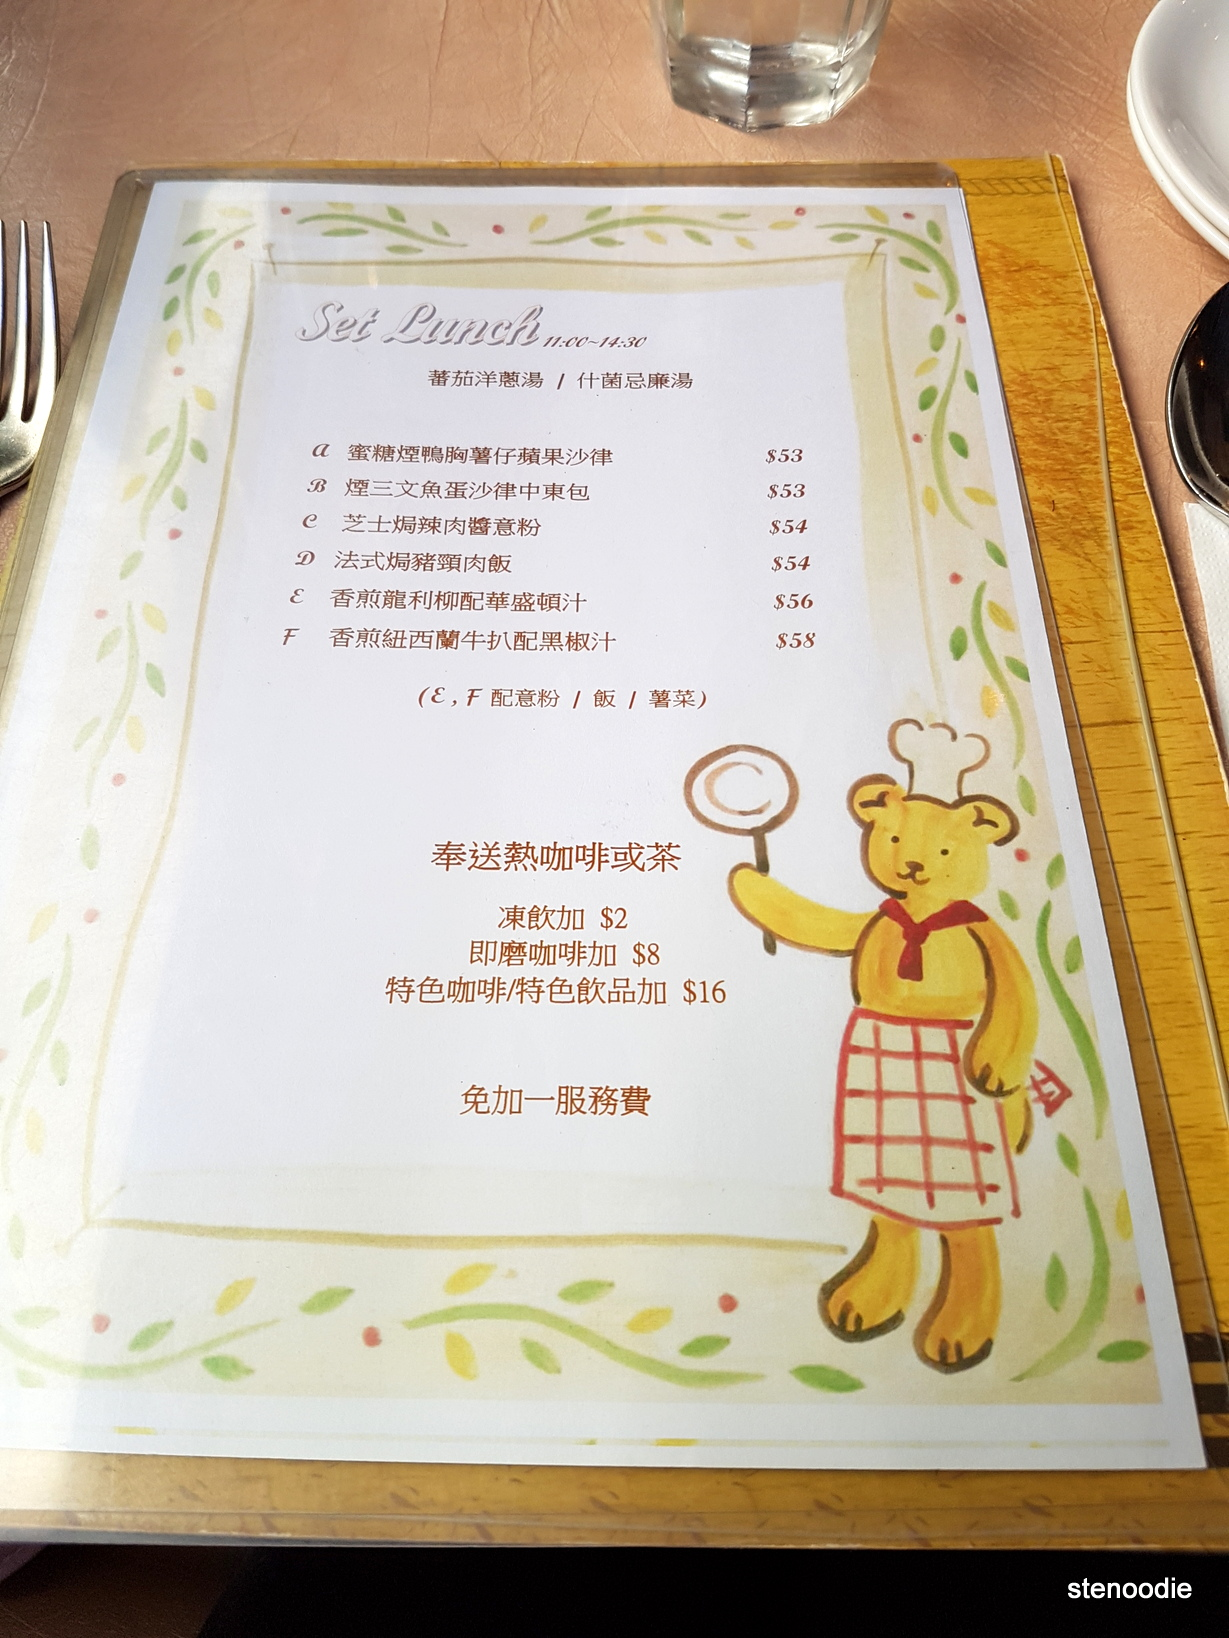 Golden Captain Restaurant Set lunch combo menu